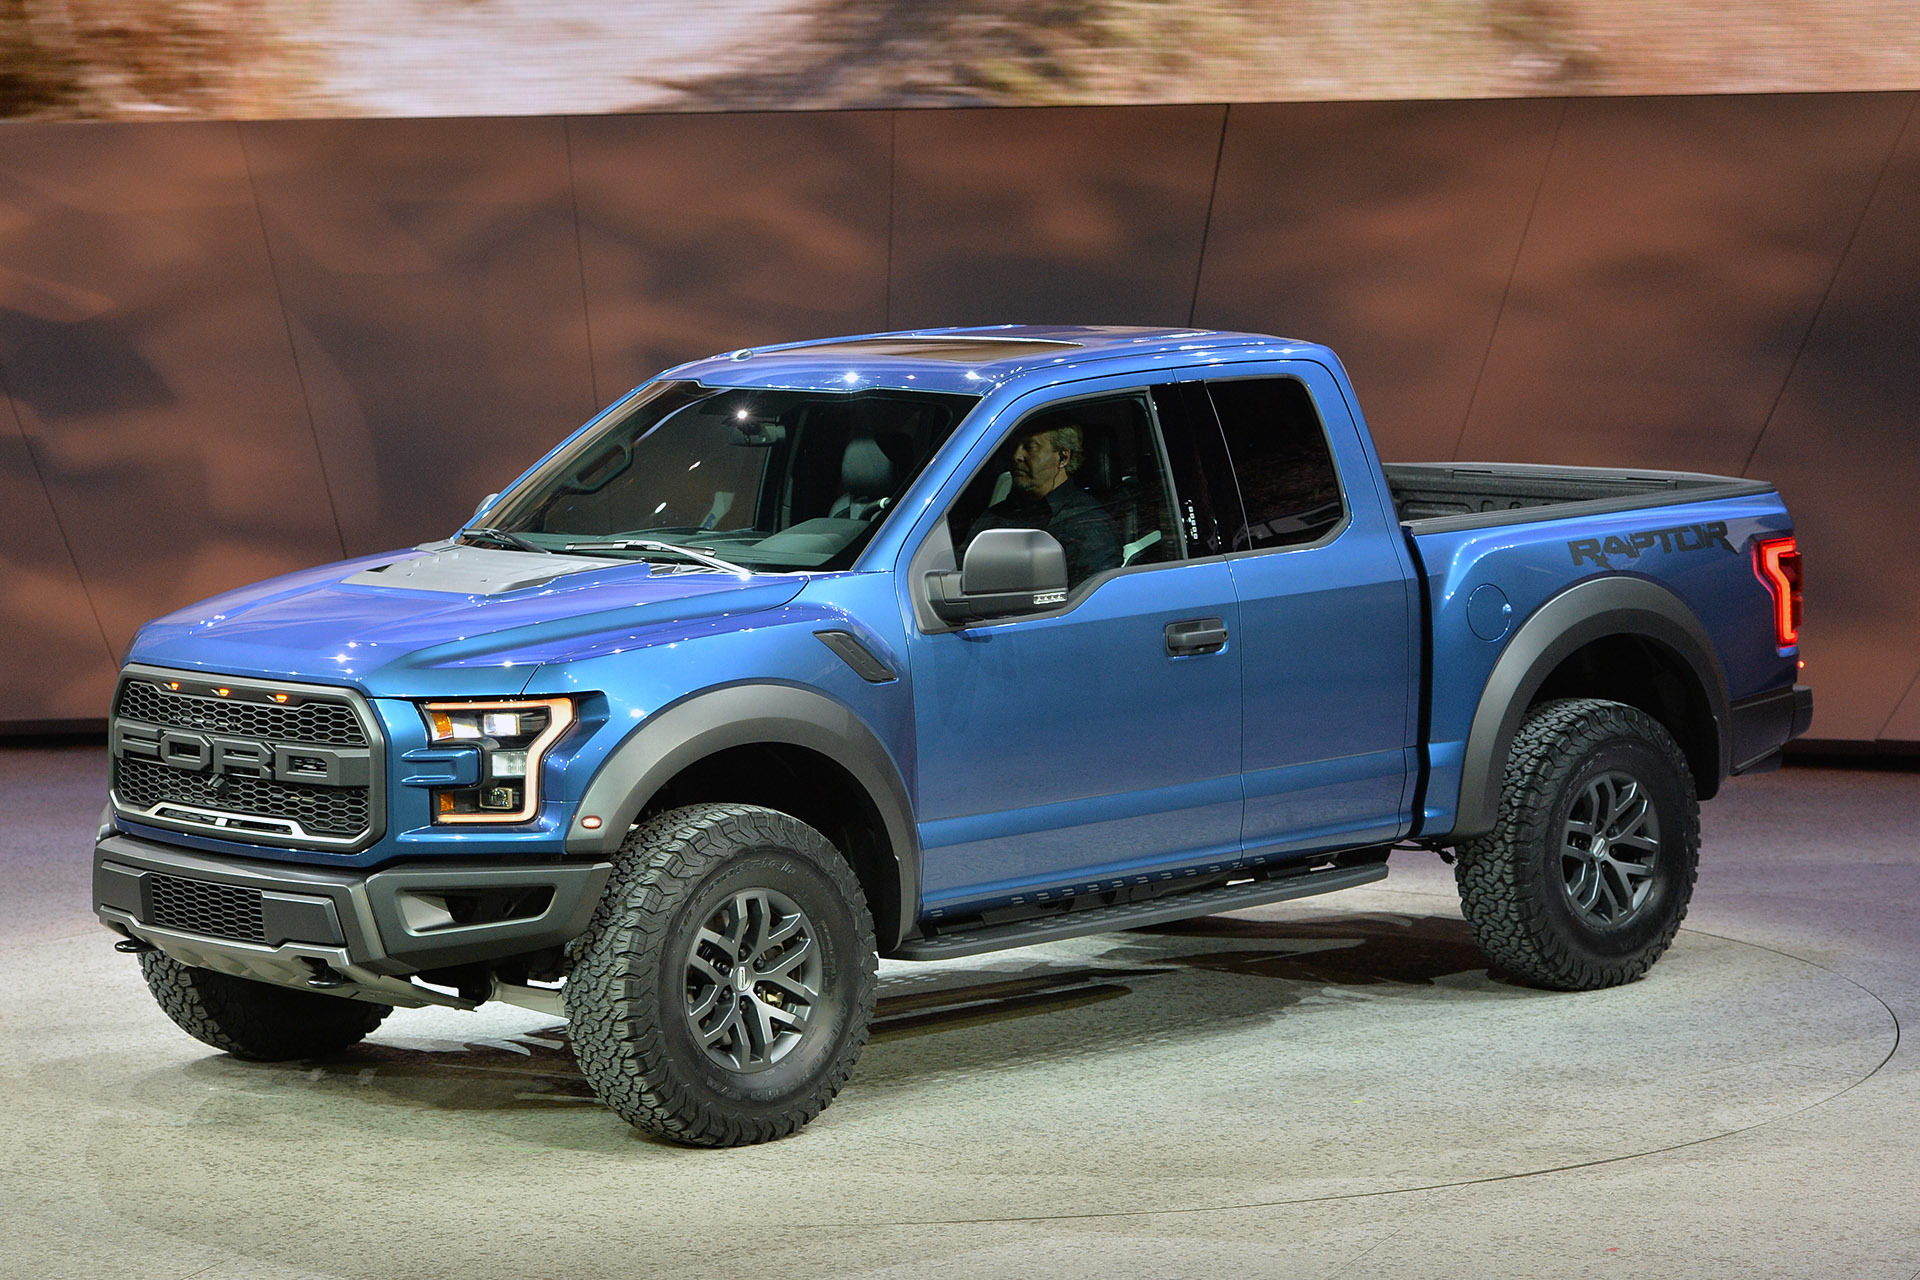 2017 ford f 150 raptor detroit 2015 photo gallery autoblog. Black Bedroom Furniture Sets. Home Design Ideas